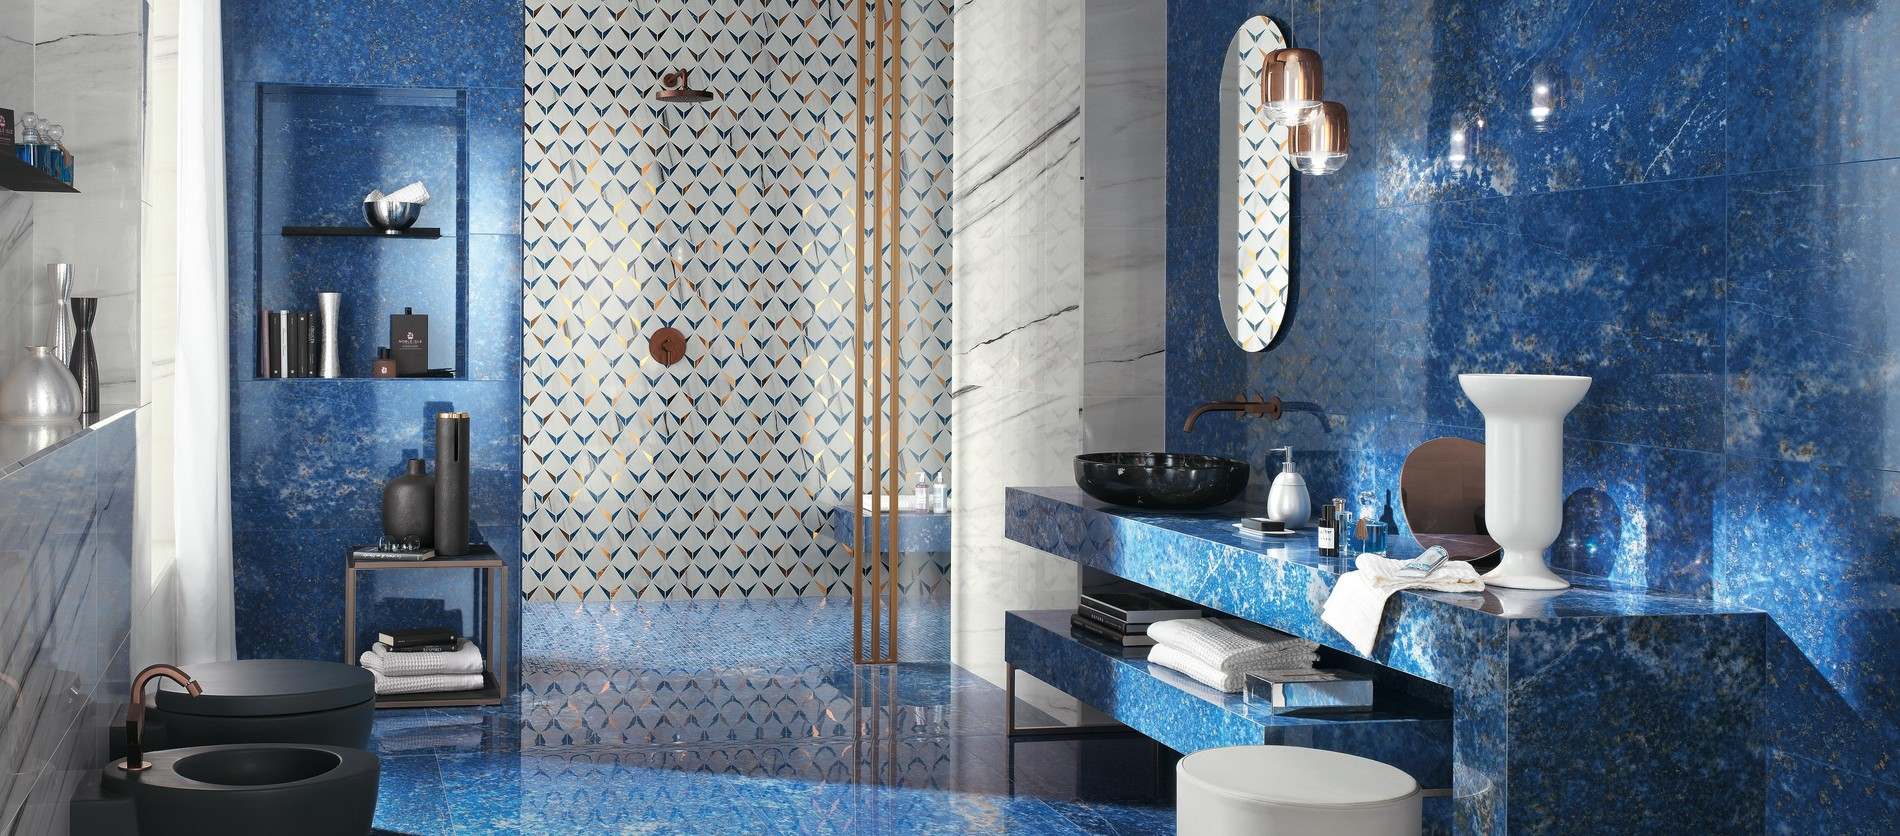 The timeless appeal of marble-look bathroom wall tiles